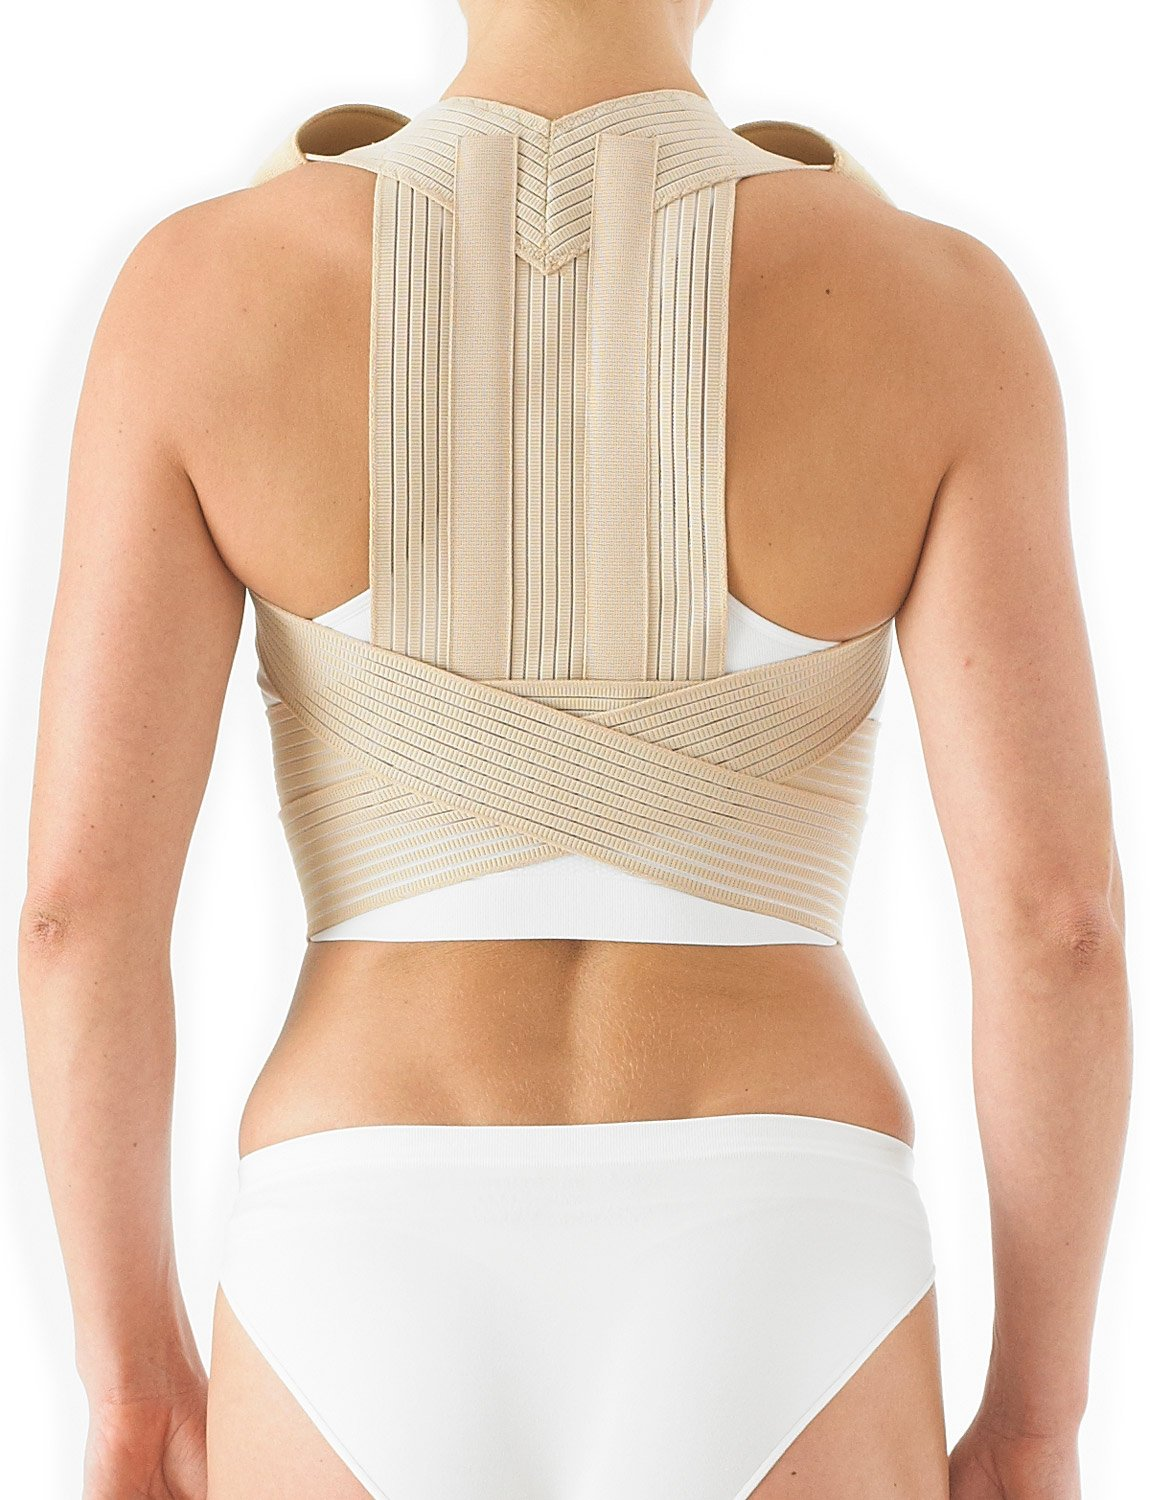 Neo G Clavicle Brace - Back Support For Posture Correction, Early Kyphosis, Rounded Shoulders, Pain Relief, Muscular Aches, Rehab - Fully Adjustable - Class 1 Medical Device - Small - Tan